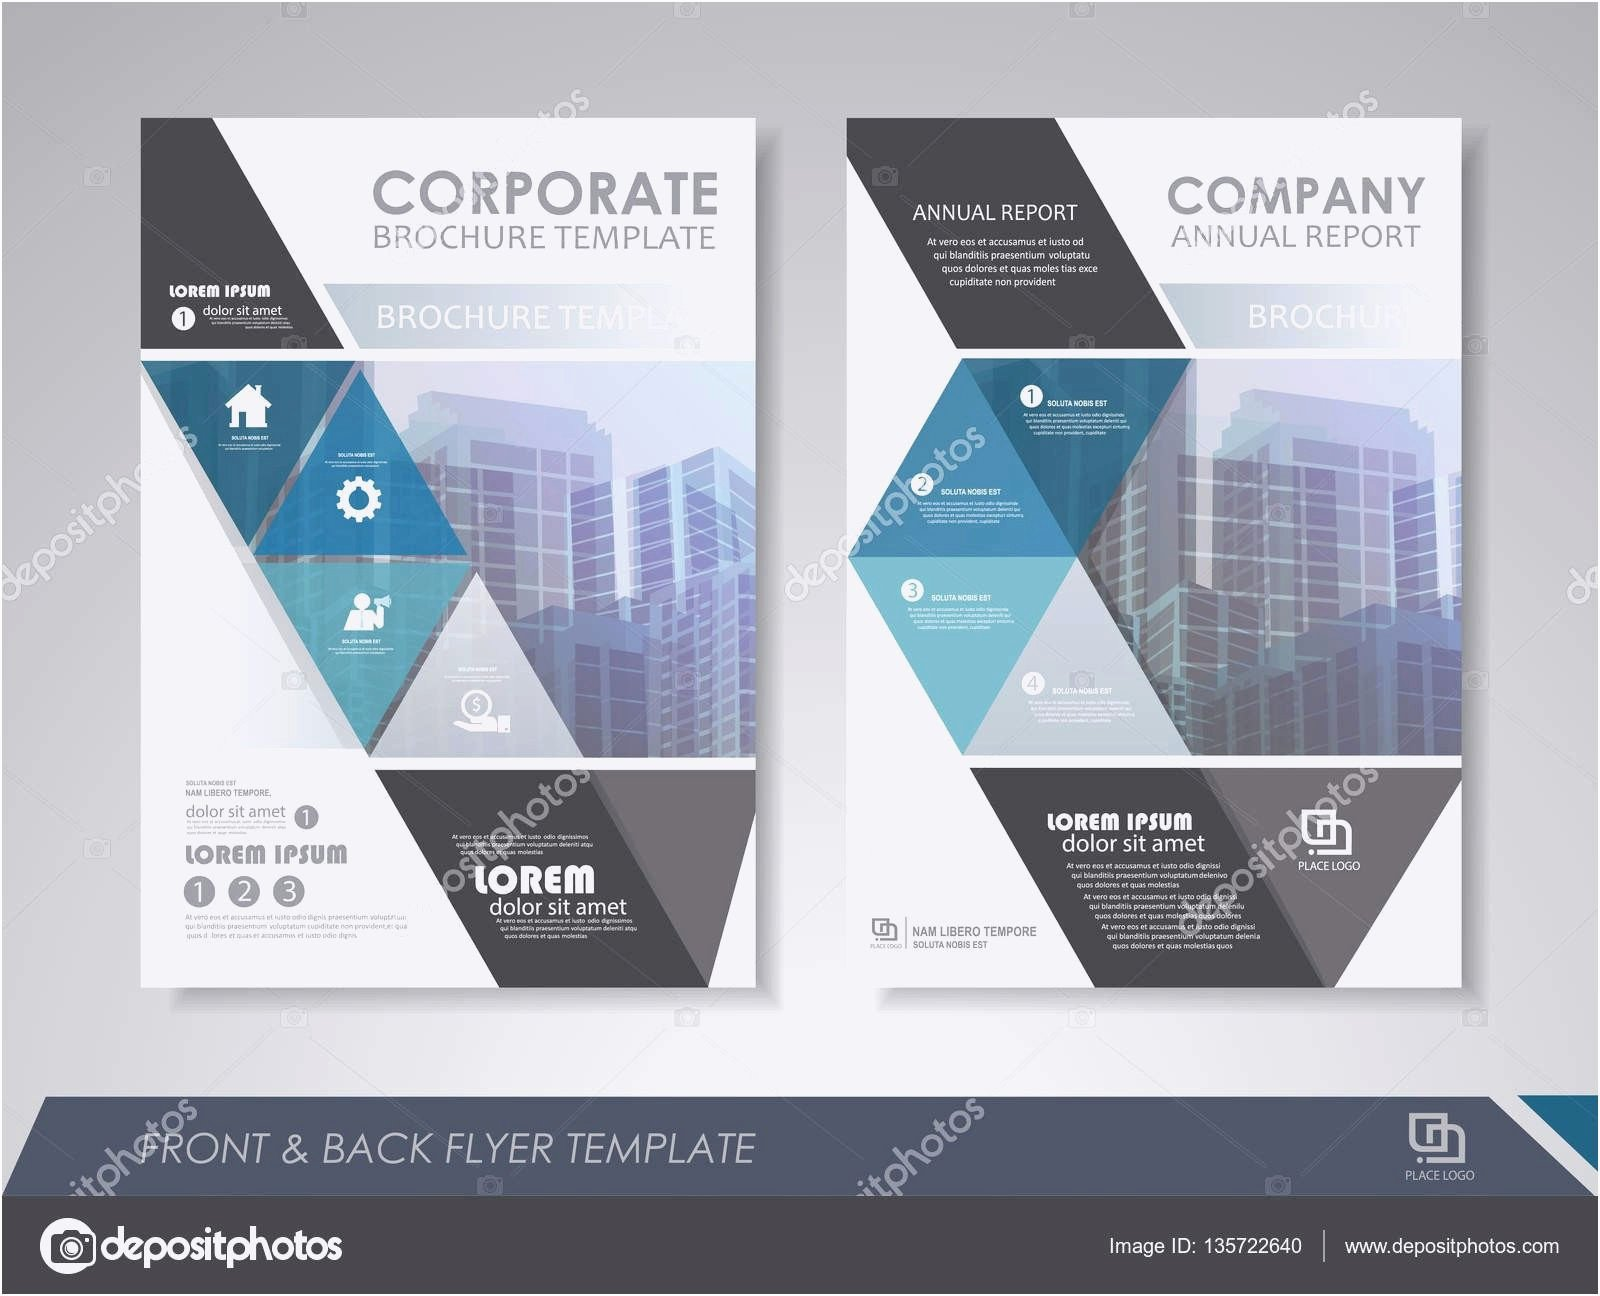 Power Point Brochure Template Lovely Free Powerpoint Brochure Templates Word 2010 Brochure